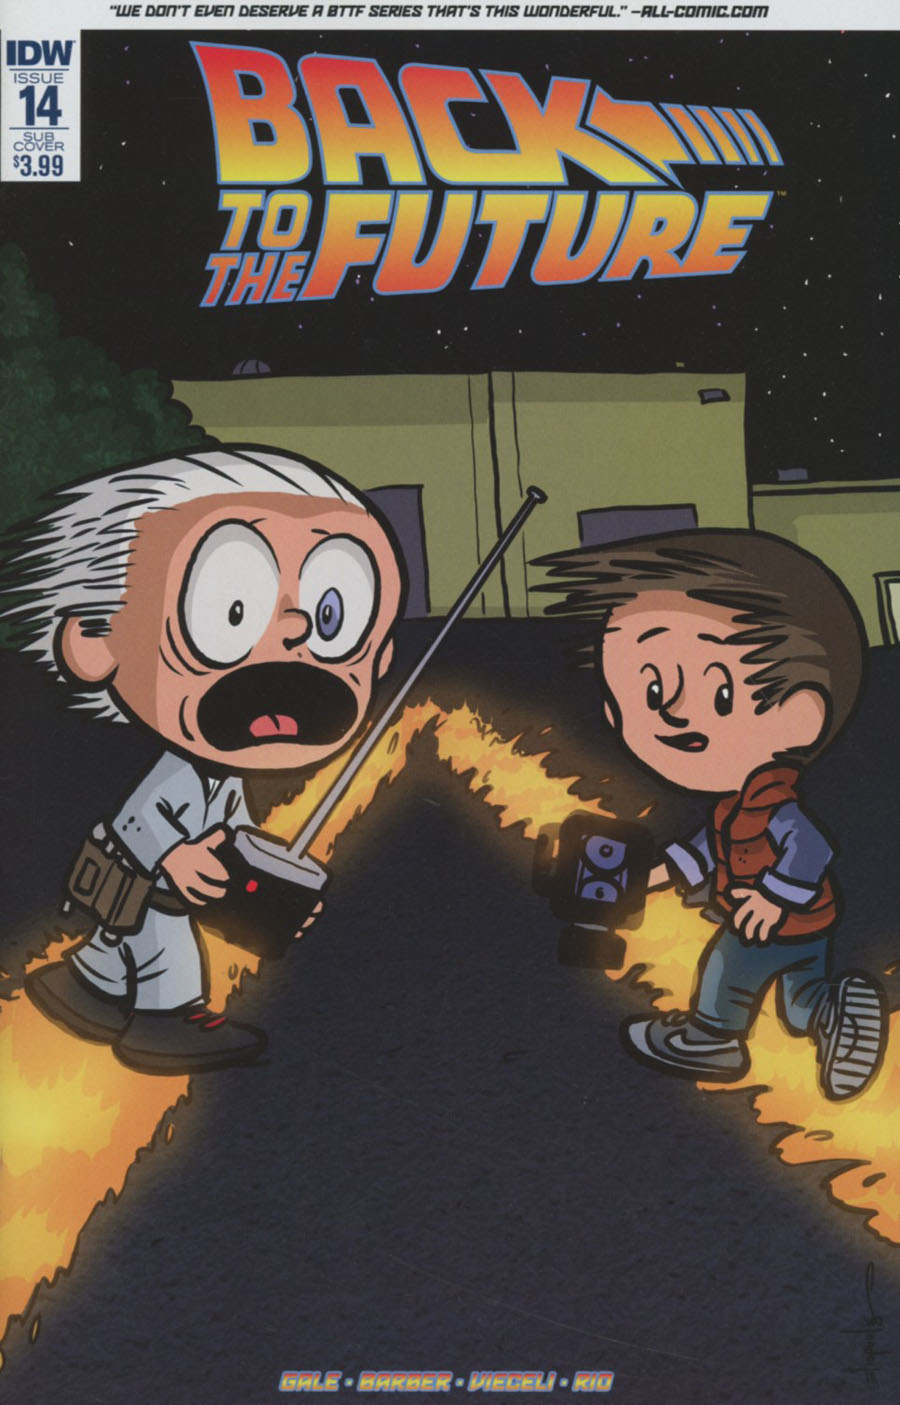 Back to the Future #14 Review